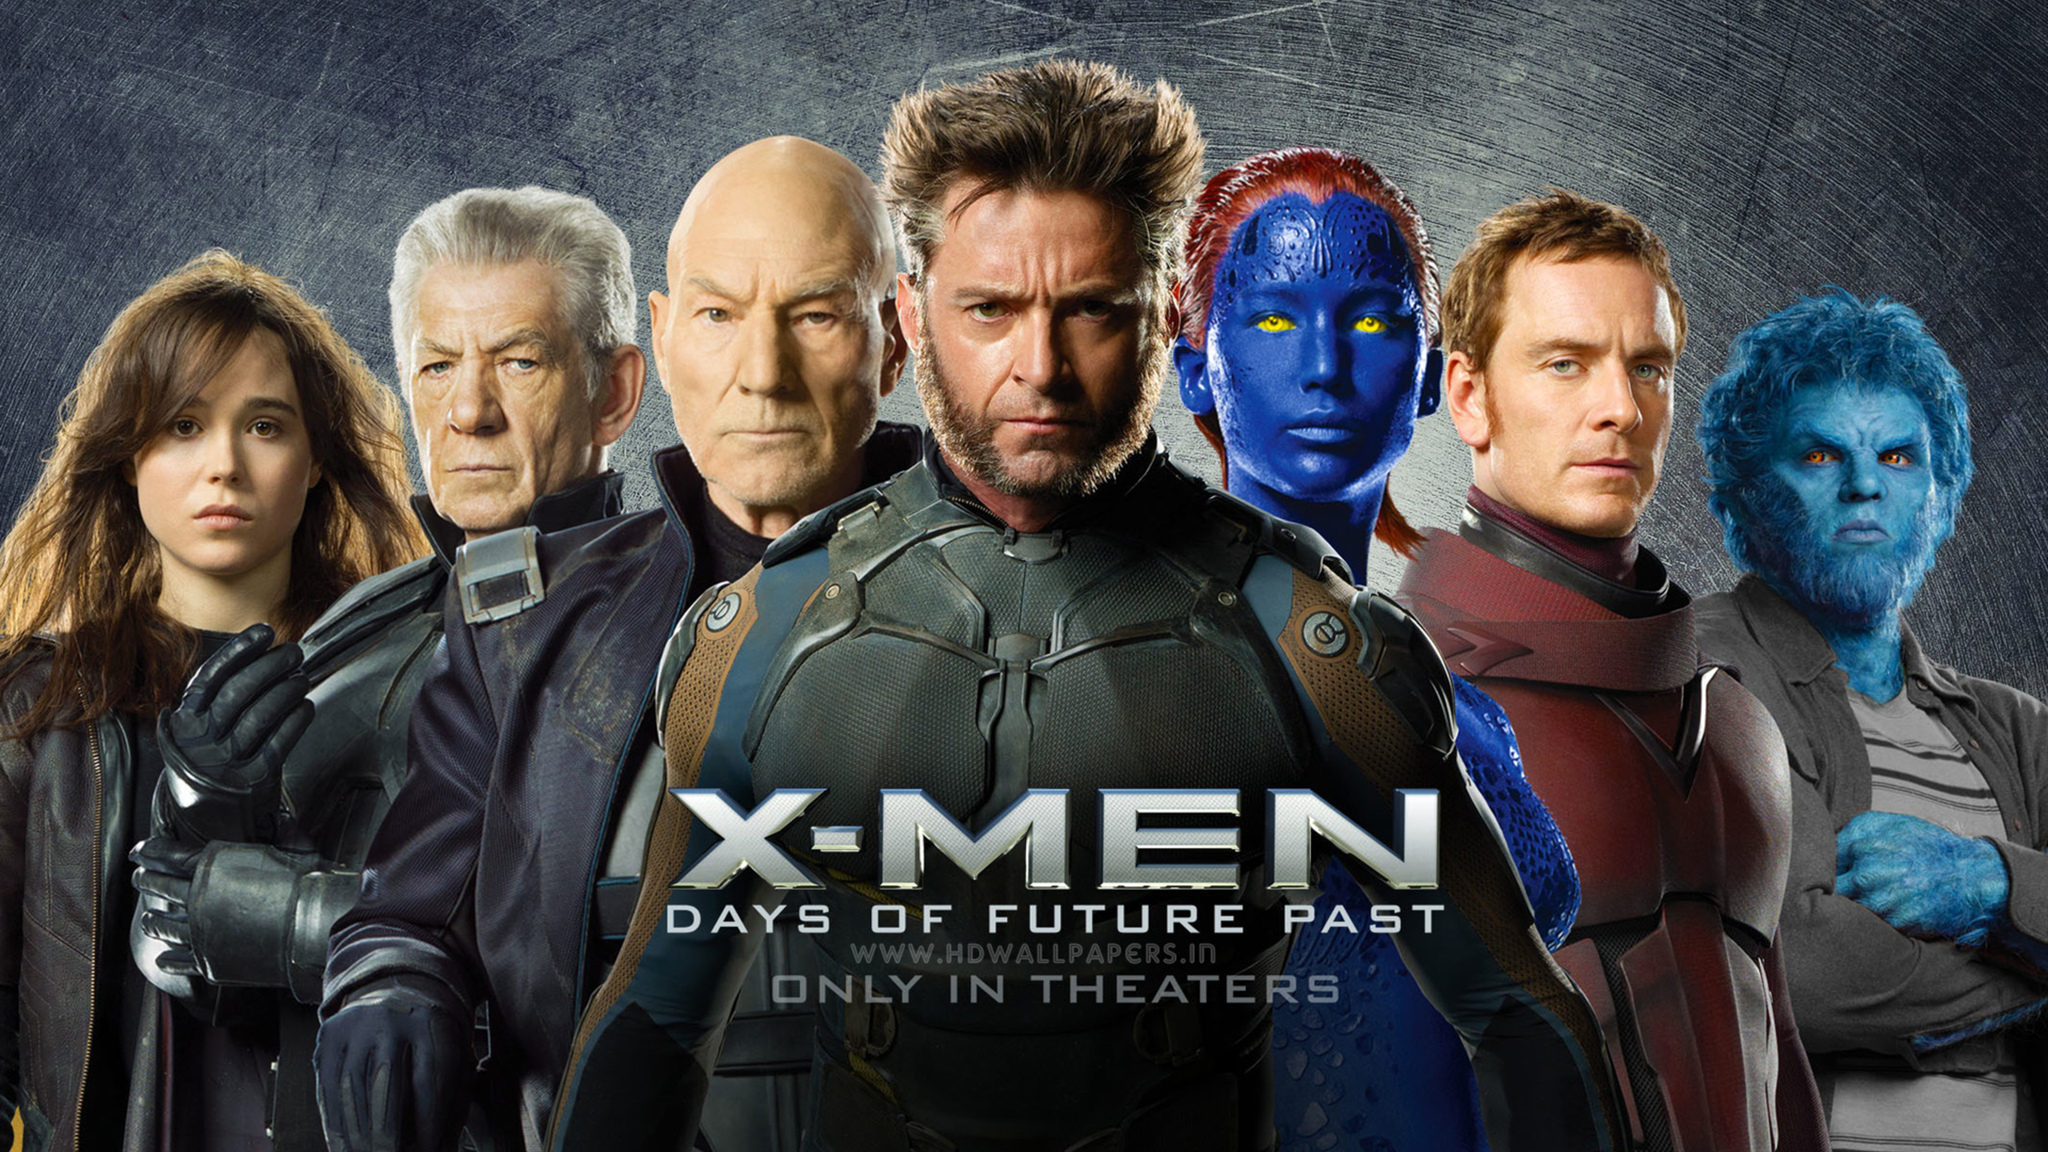 2048x1152 X Men Days Of Future Past 2048x1152 Resolution Hd 4k